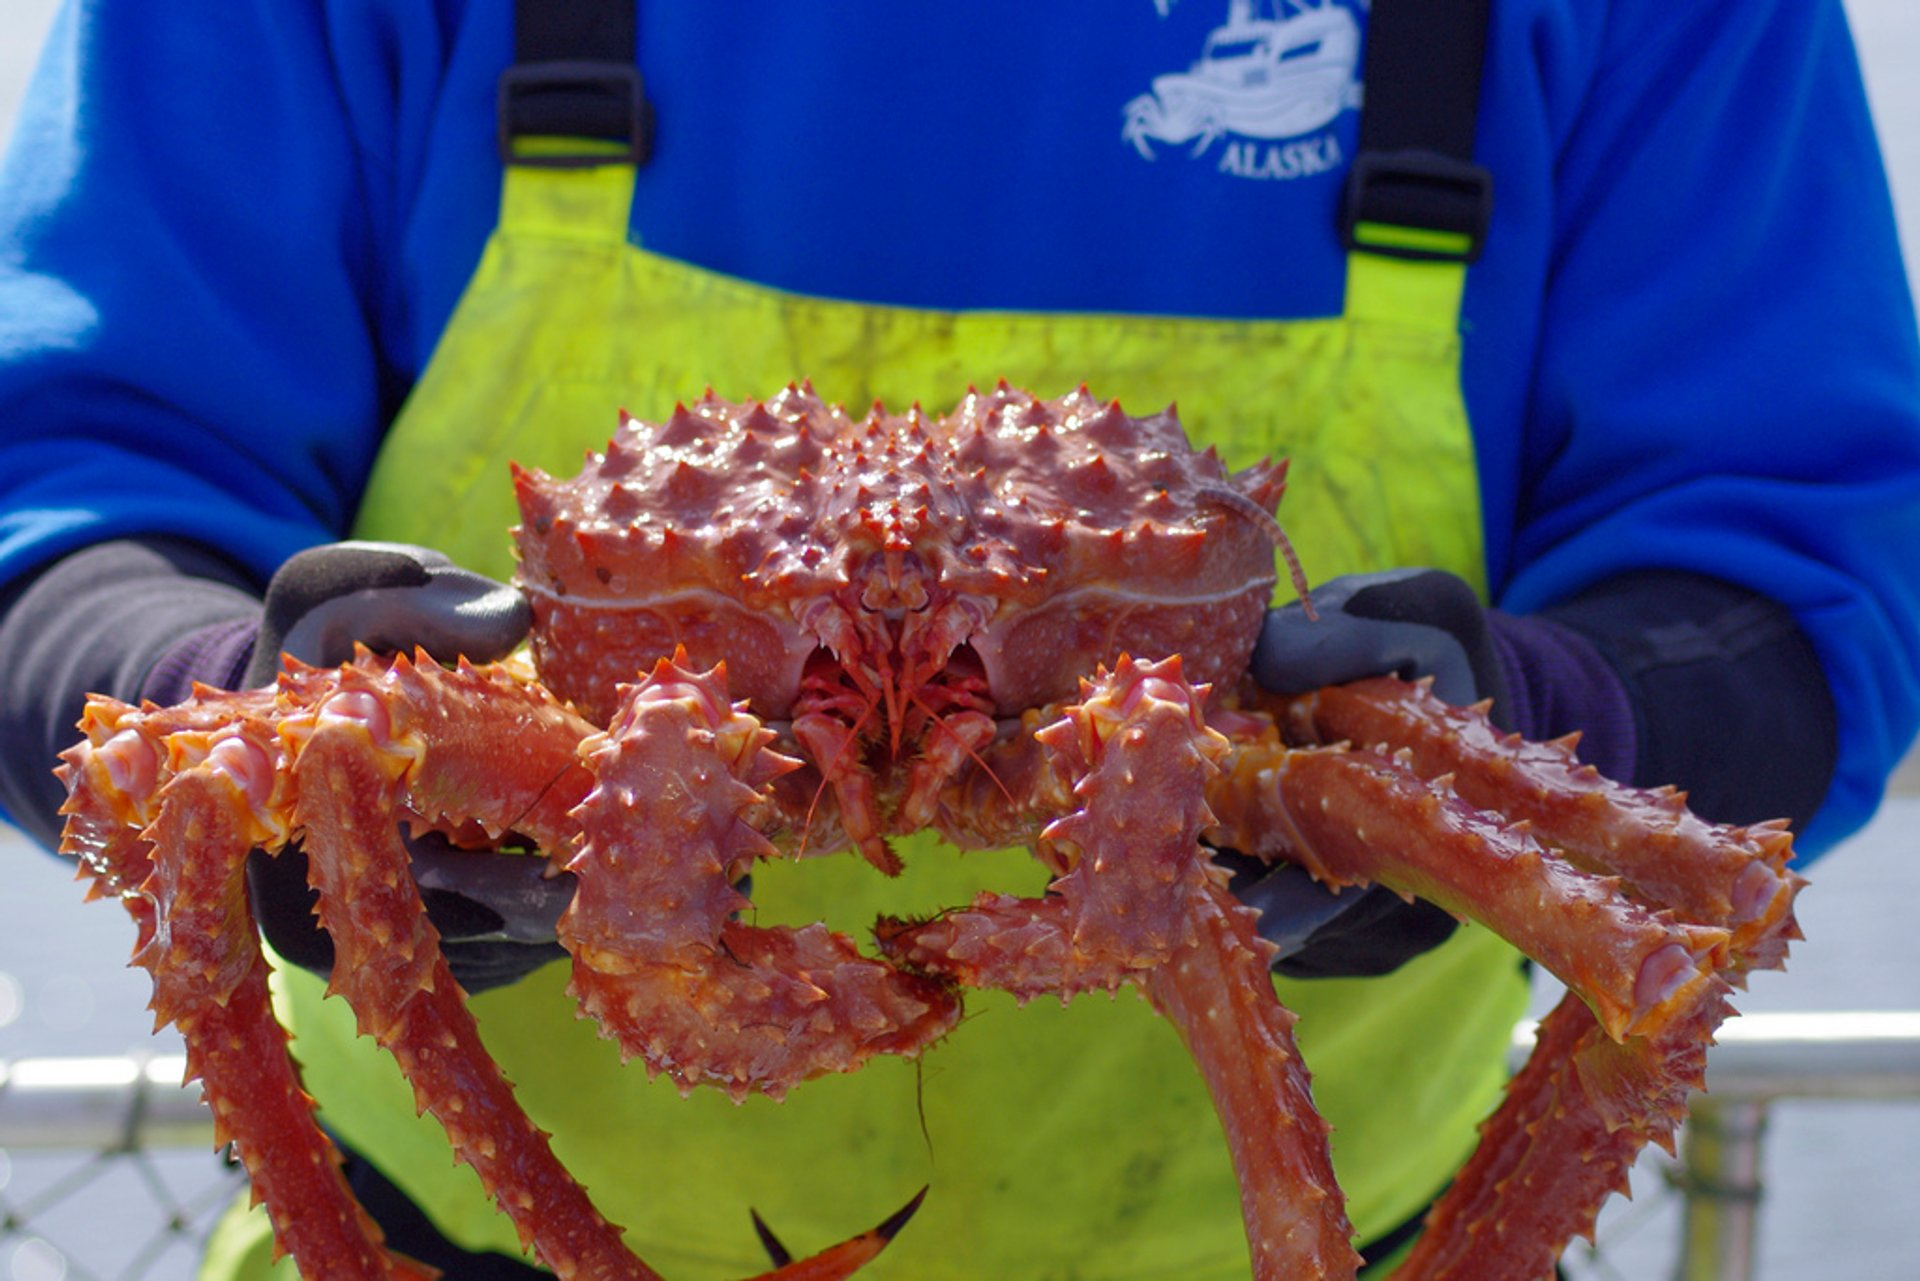 King Crab in Alaska 2020 - Best Time